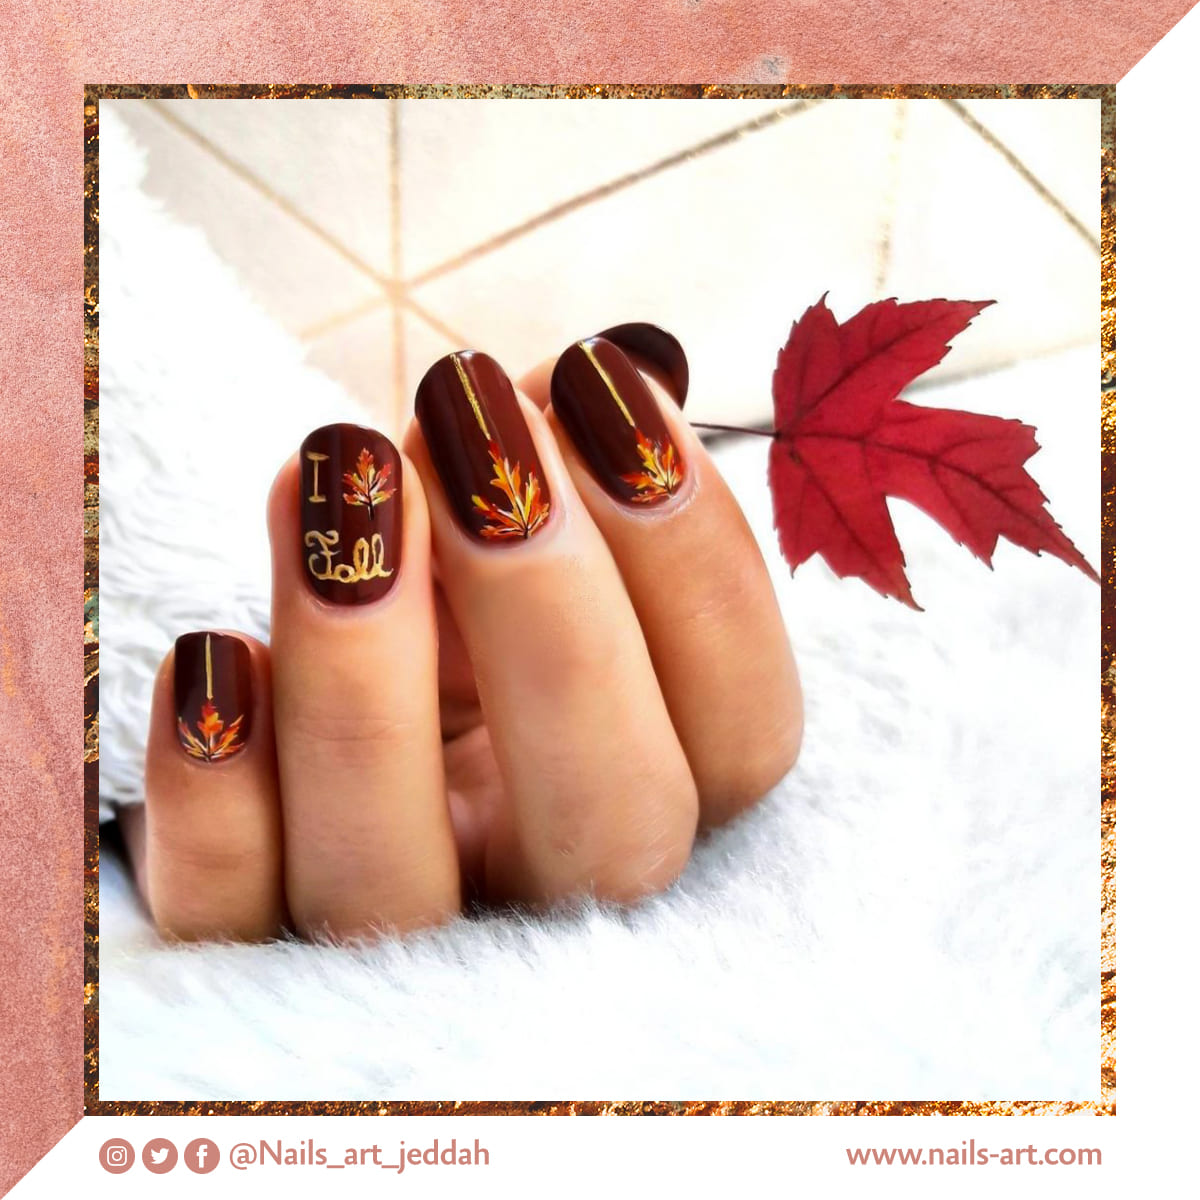 Audiences can take advantage of nail tips through designs provided by nail centers on social media